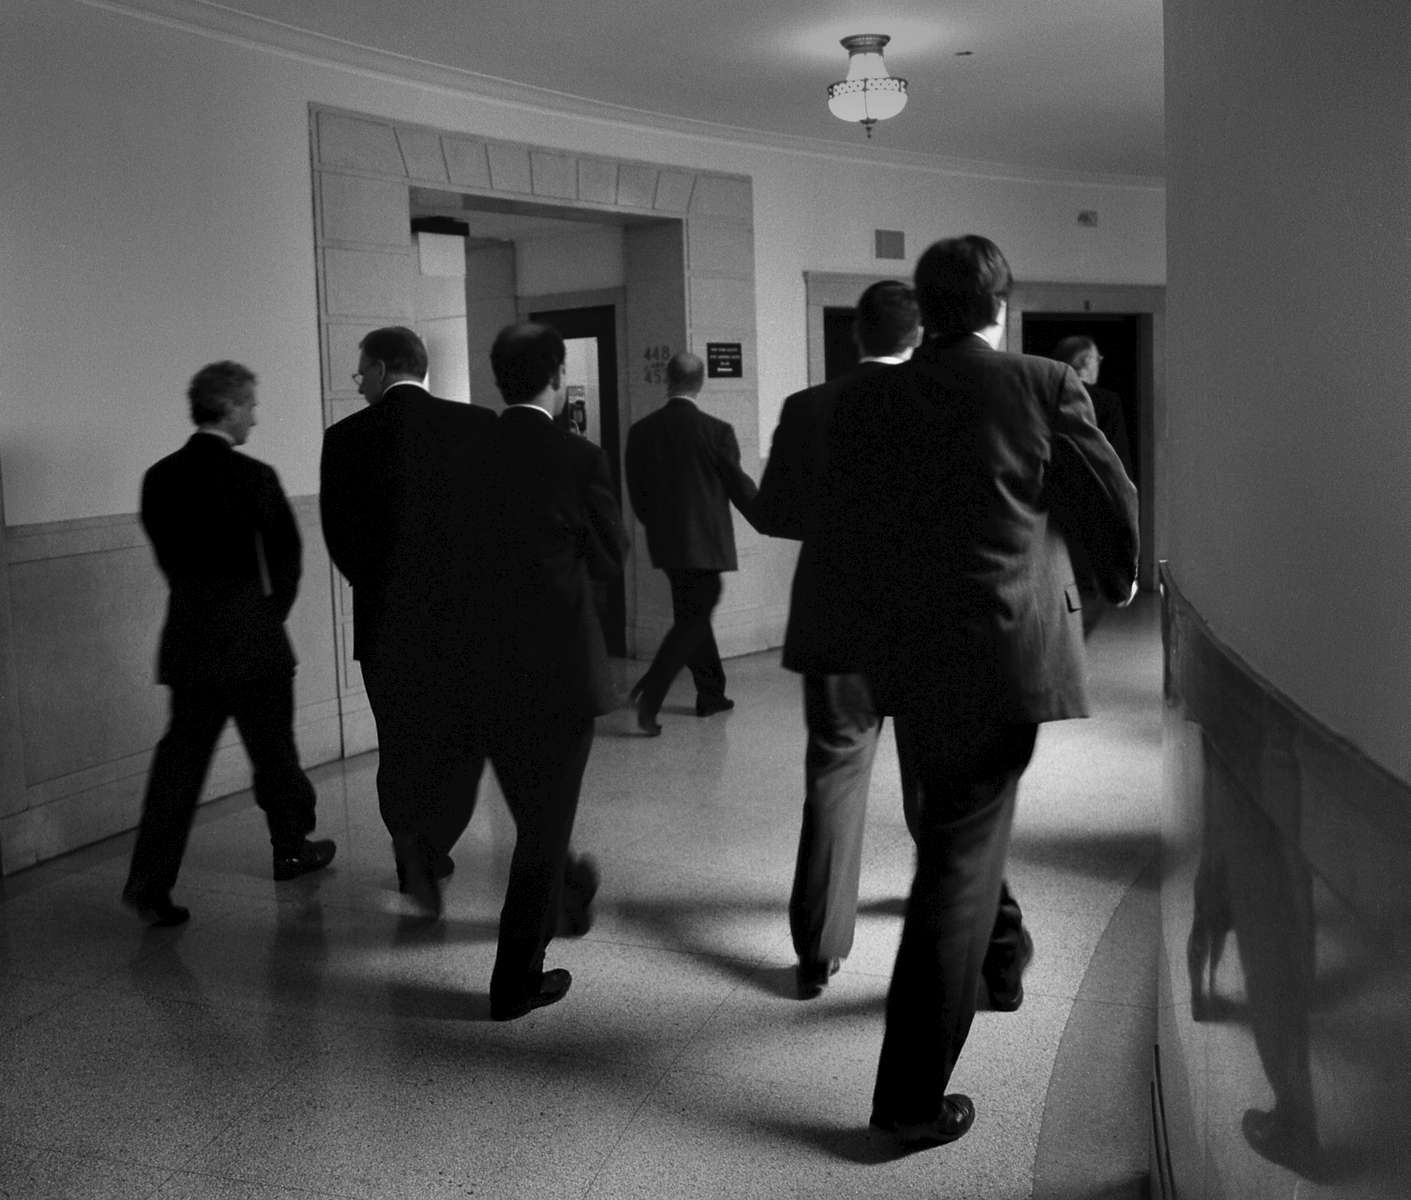 Attorneys Walking, State Supreme Court, 60 Centre Street - June, 2004